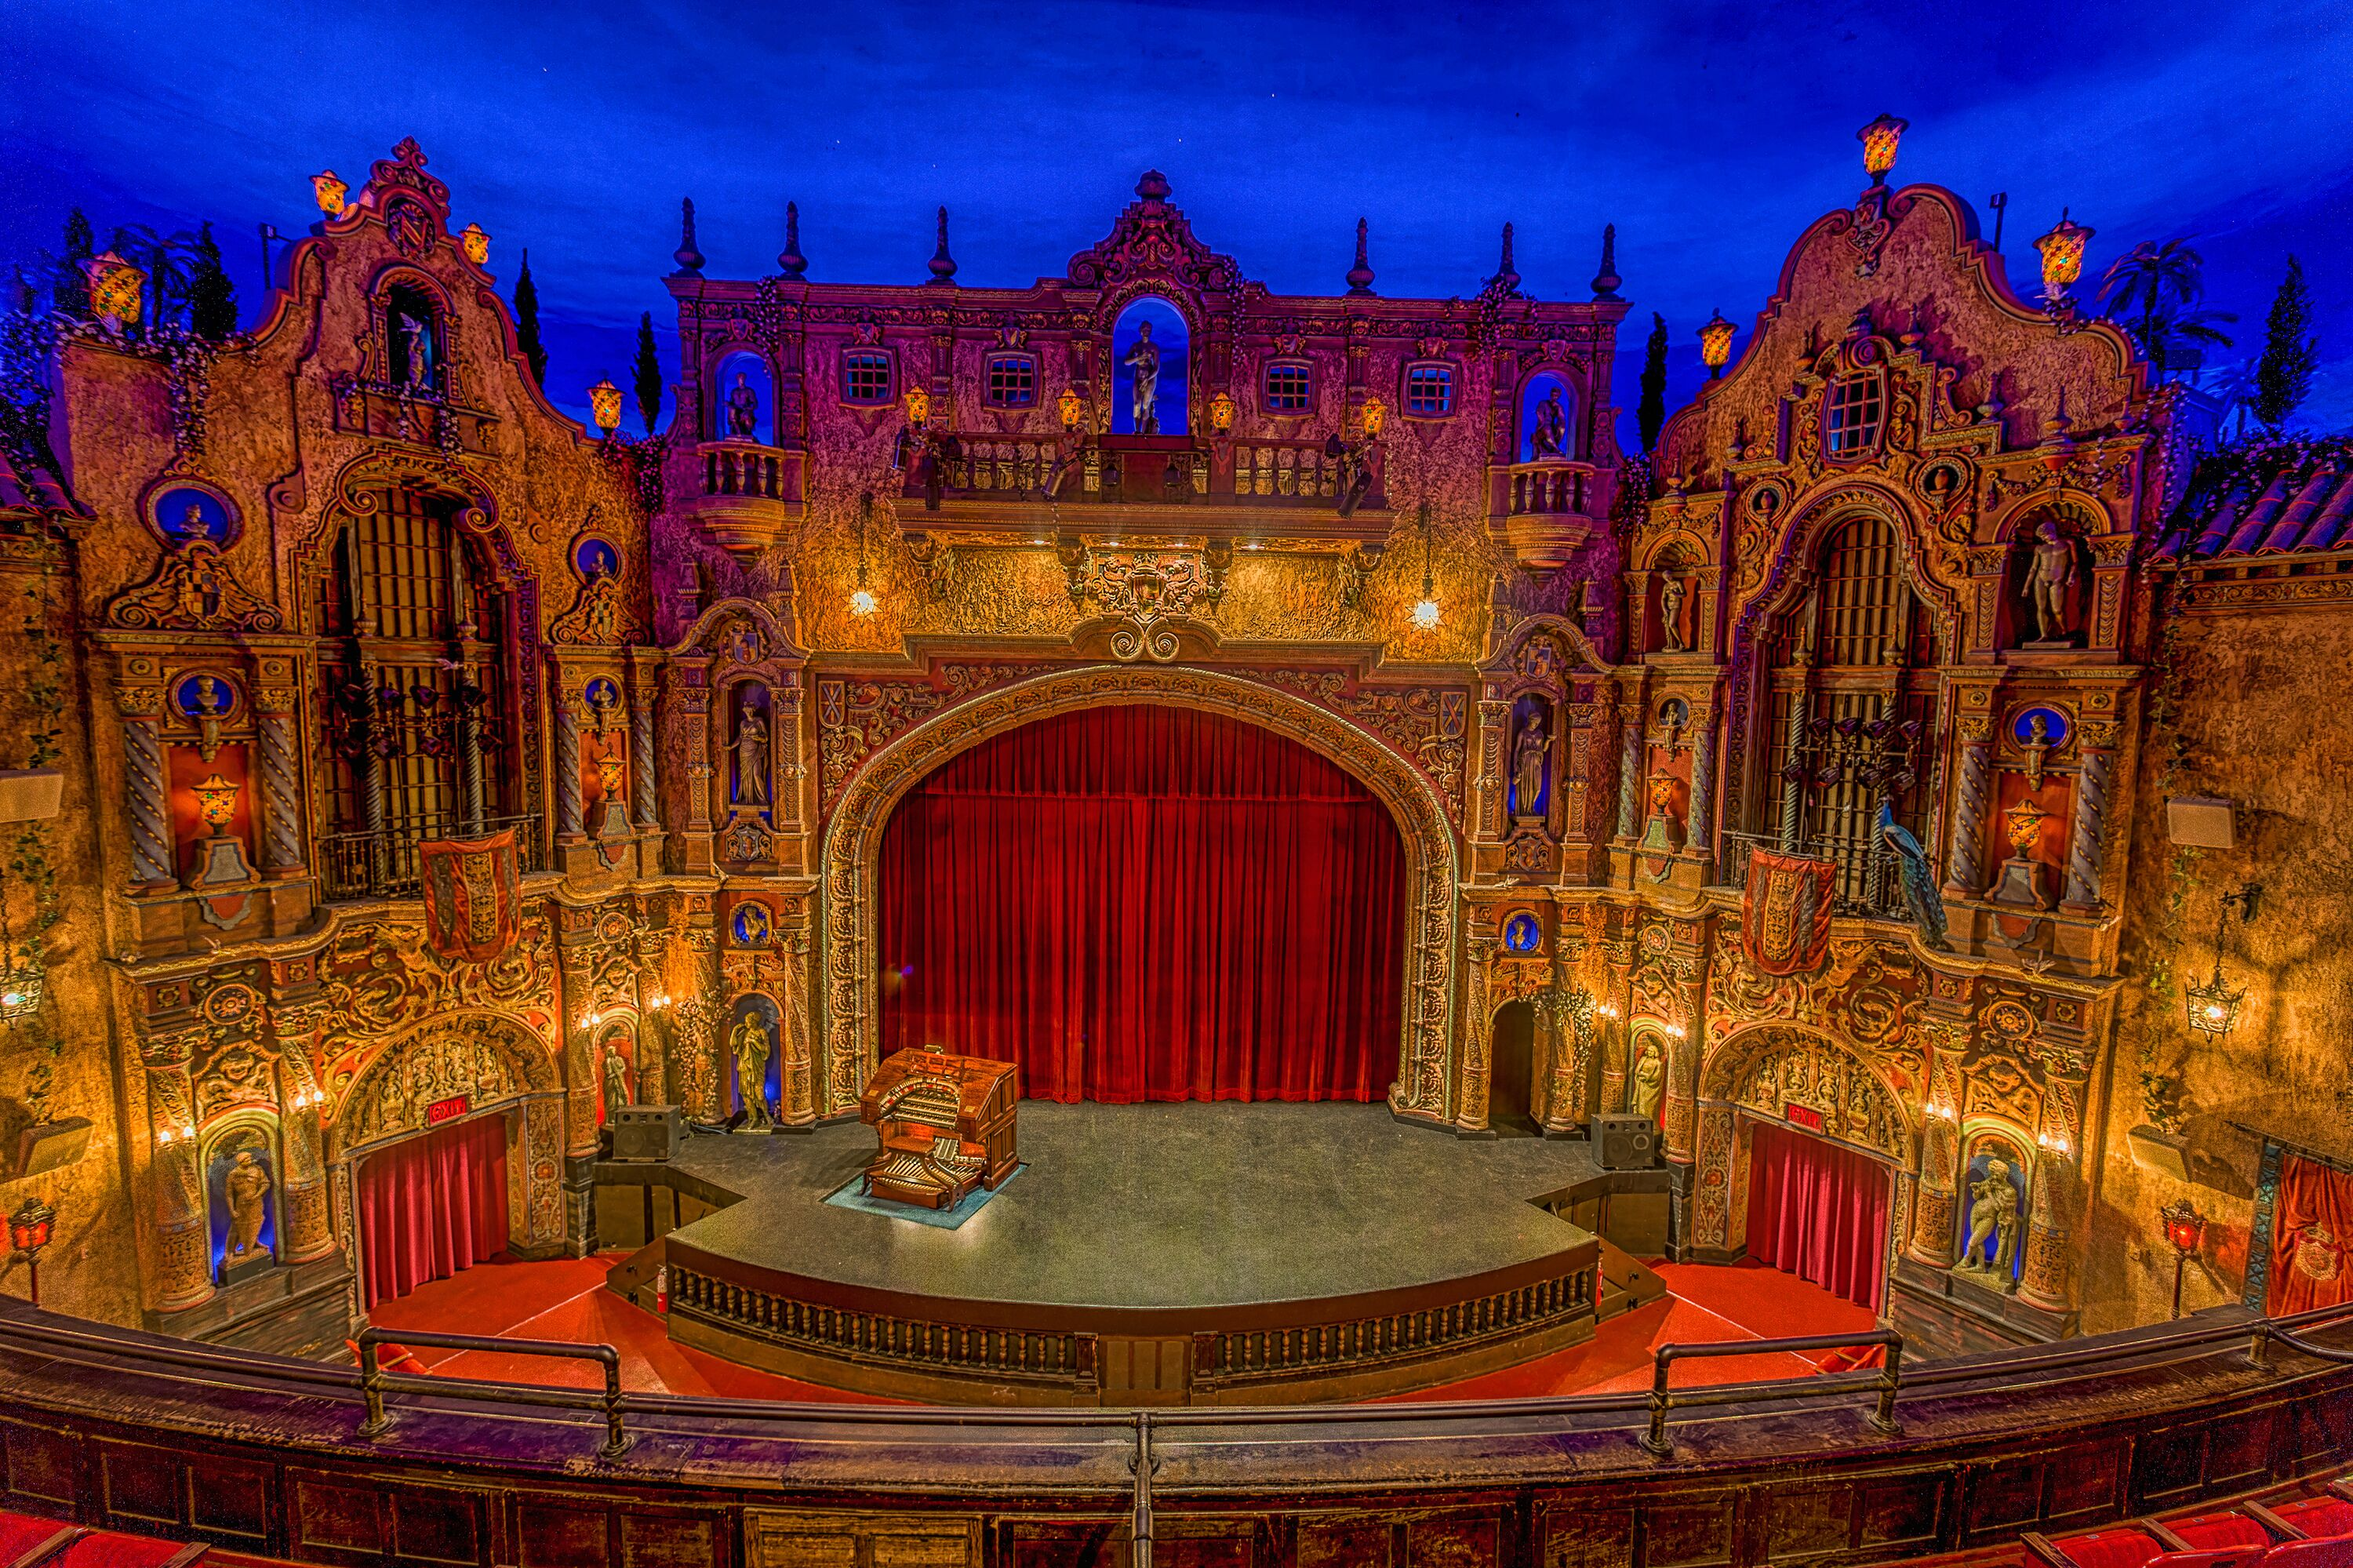 Performance stage at Tampa theater